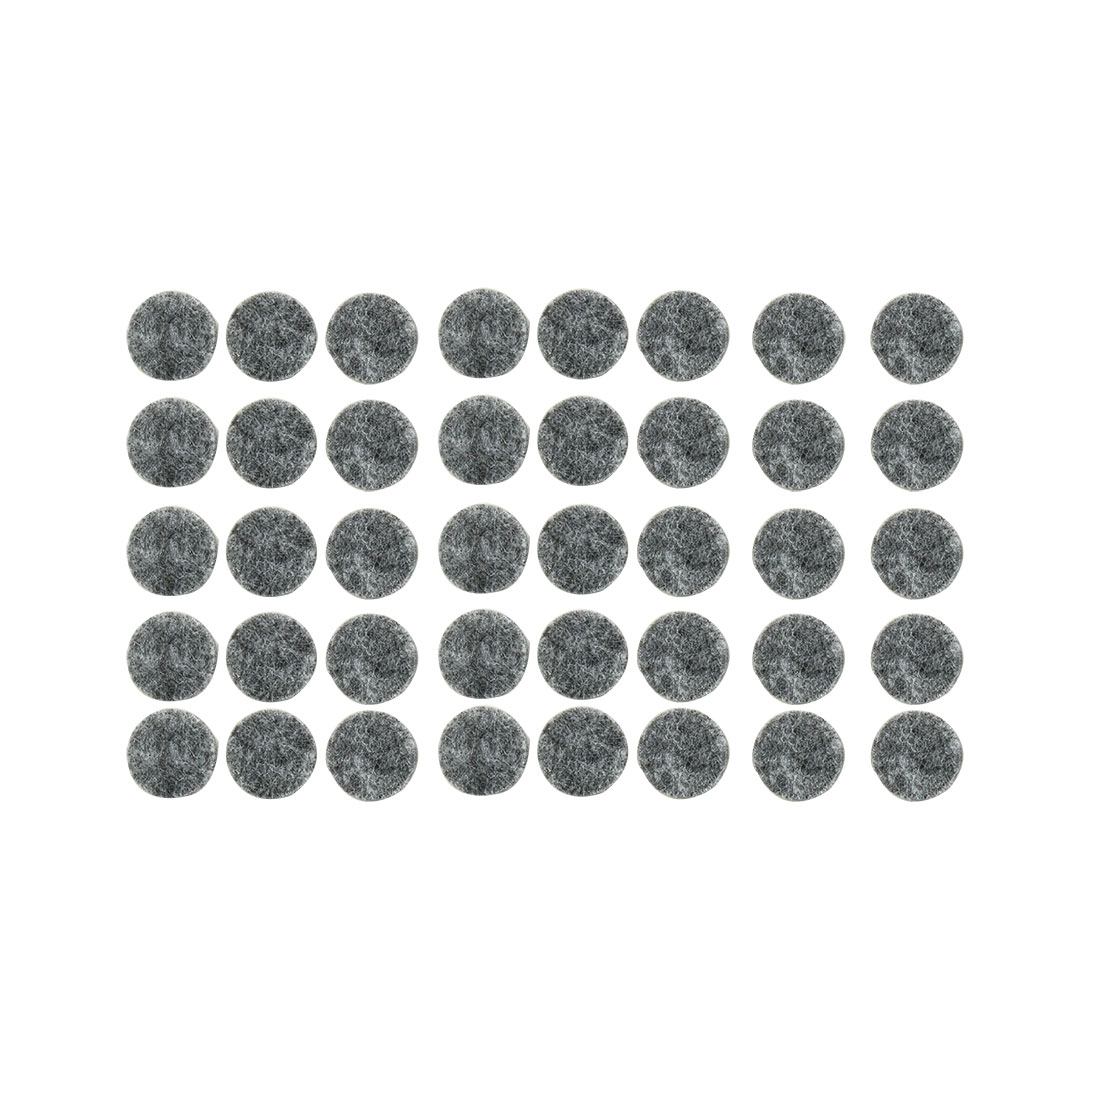 Household Self Adhesive Surface Protection Furniture Felt Pads Mats Gray 15mm Dia 40pcs